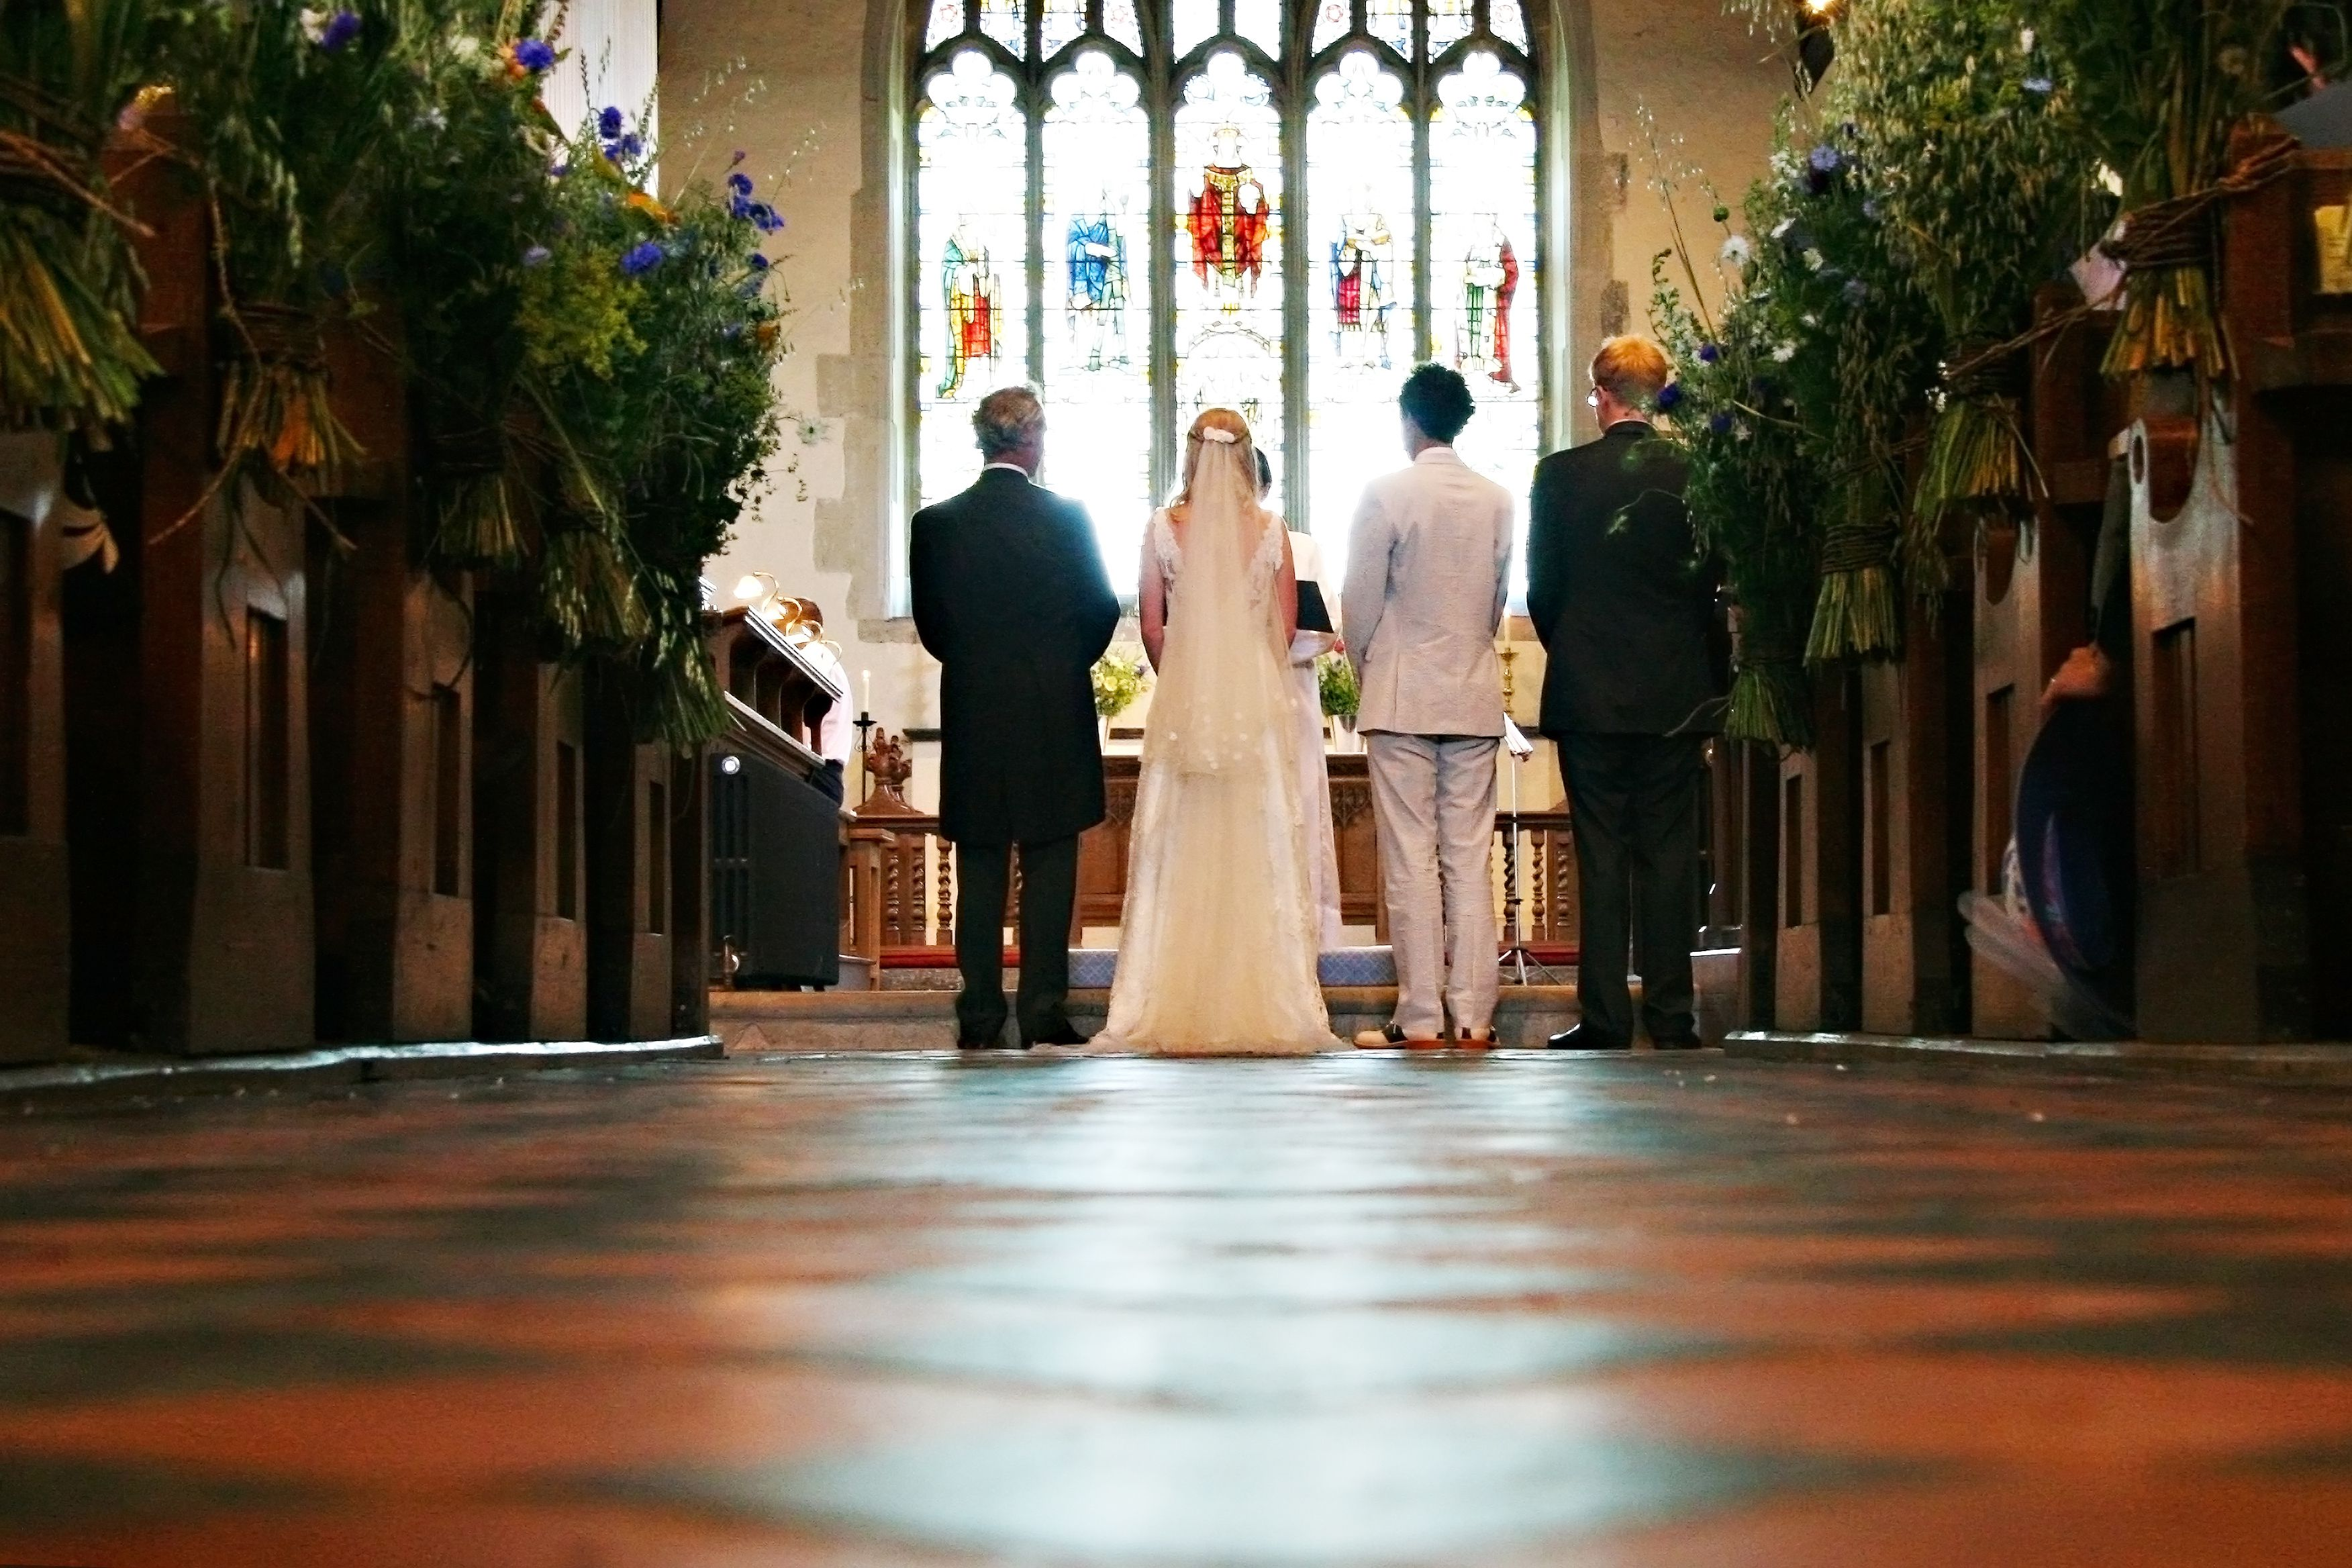 Christian wedding symbols the meaning behind the traditions 4 ways to conduct the call to worship in a christian wedding biocorpaavc